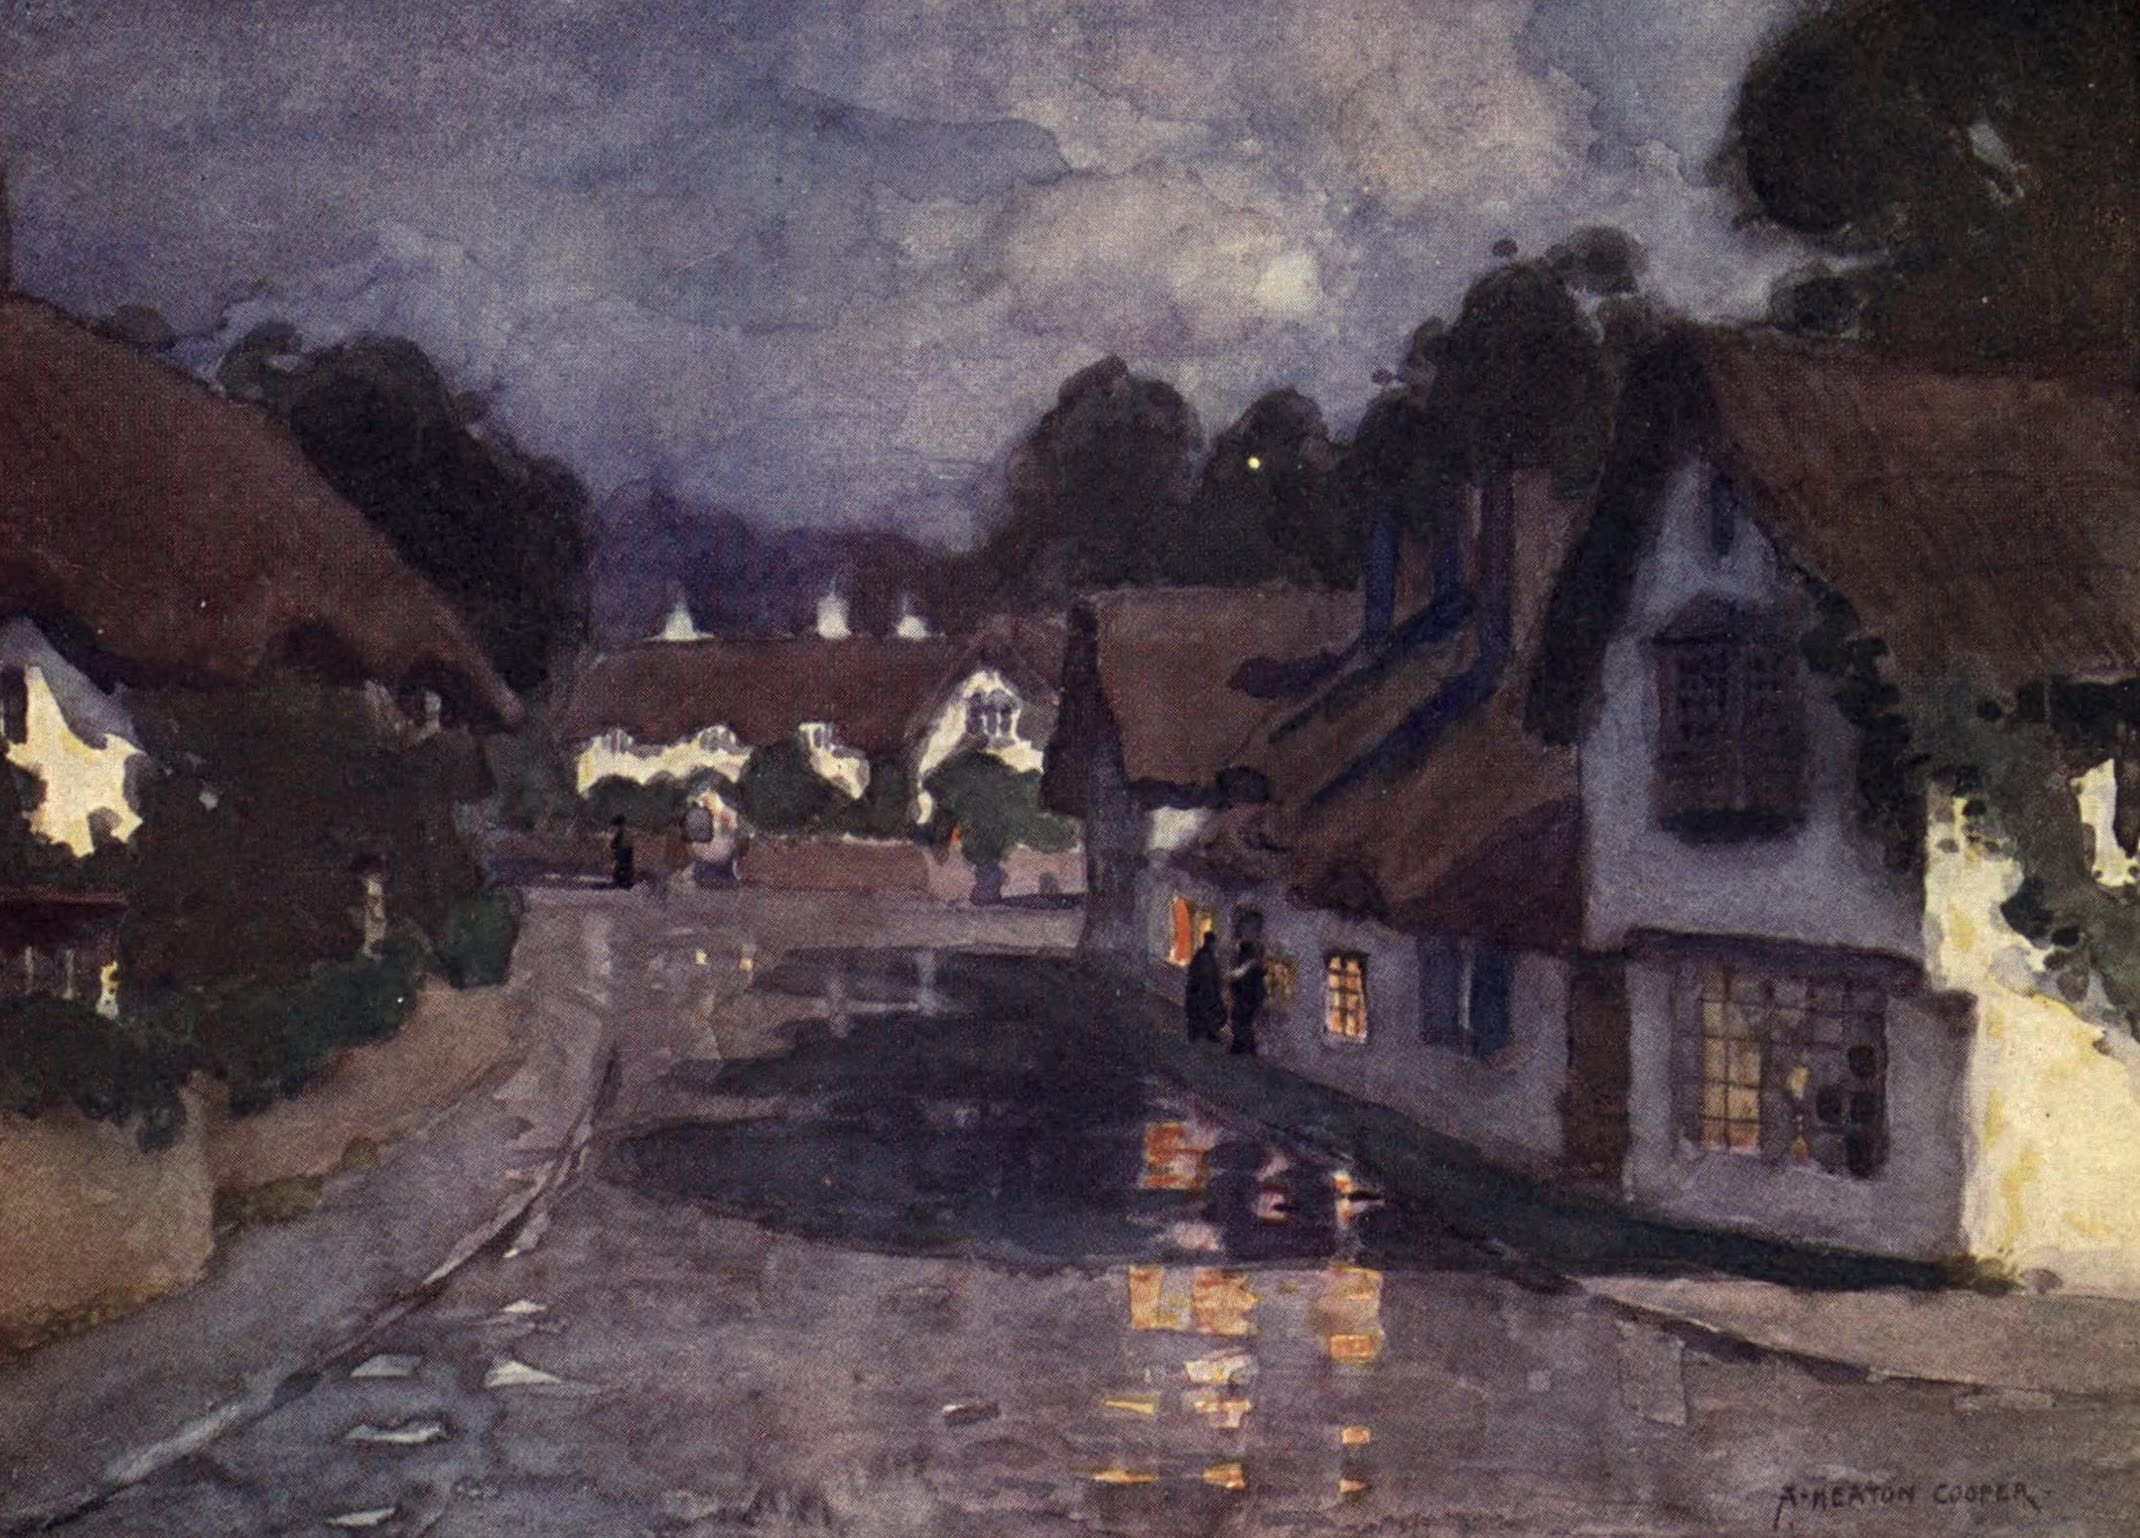 Isle of Wight Painted and Described - Shanklin Village - Moonlight after rain (1908)